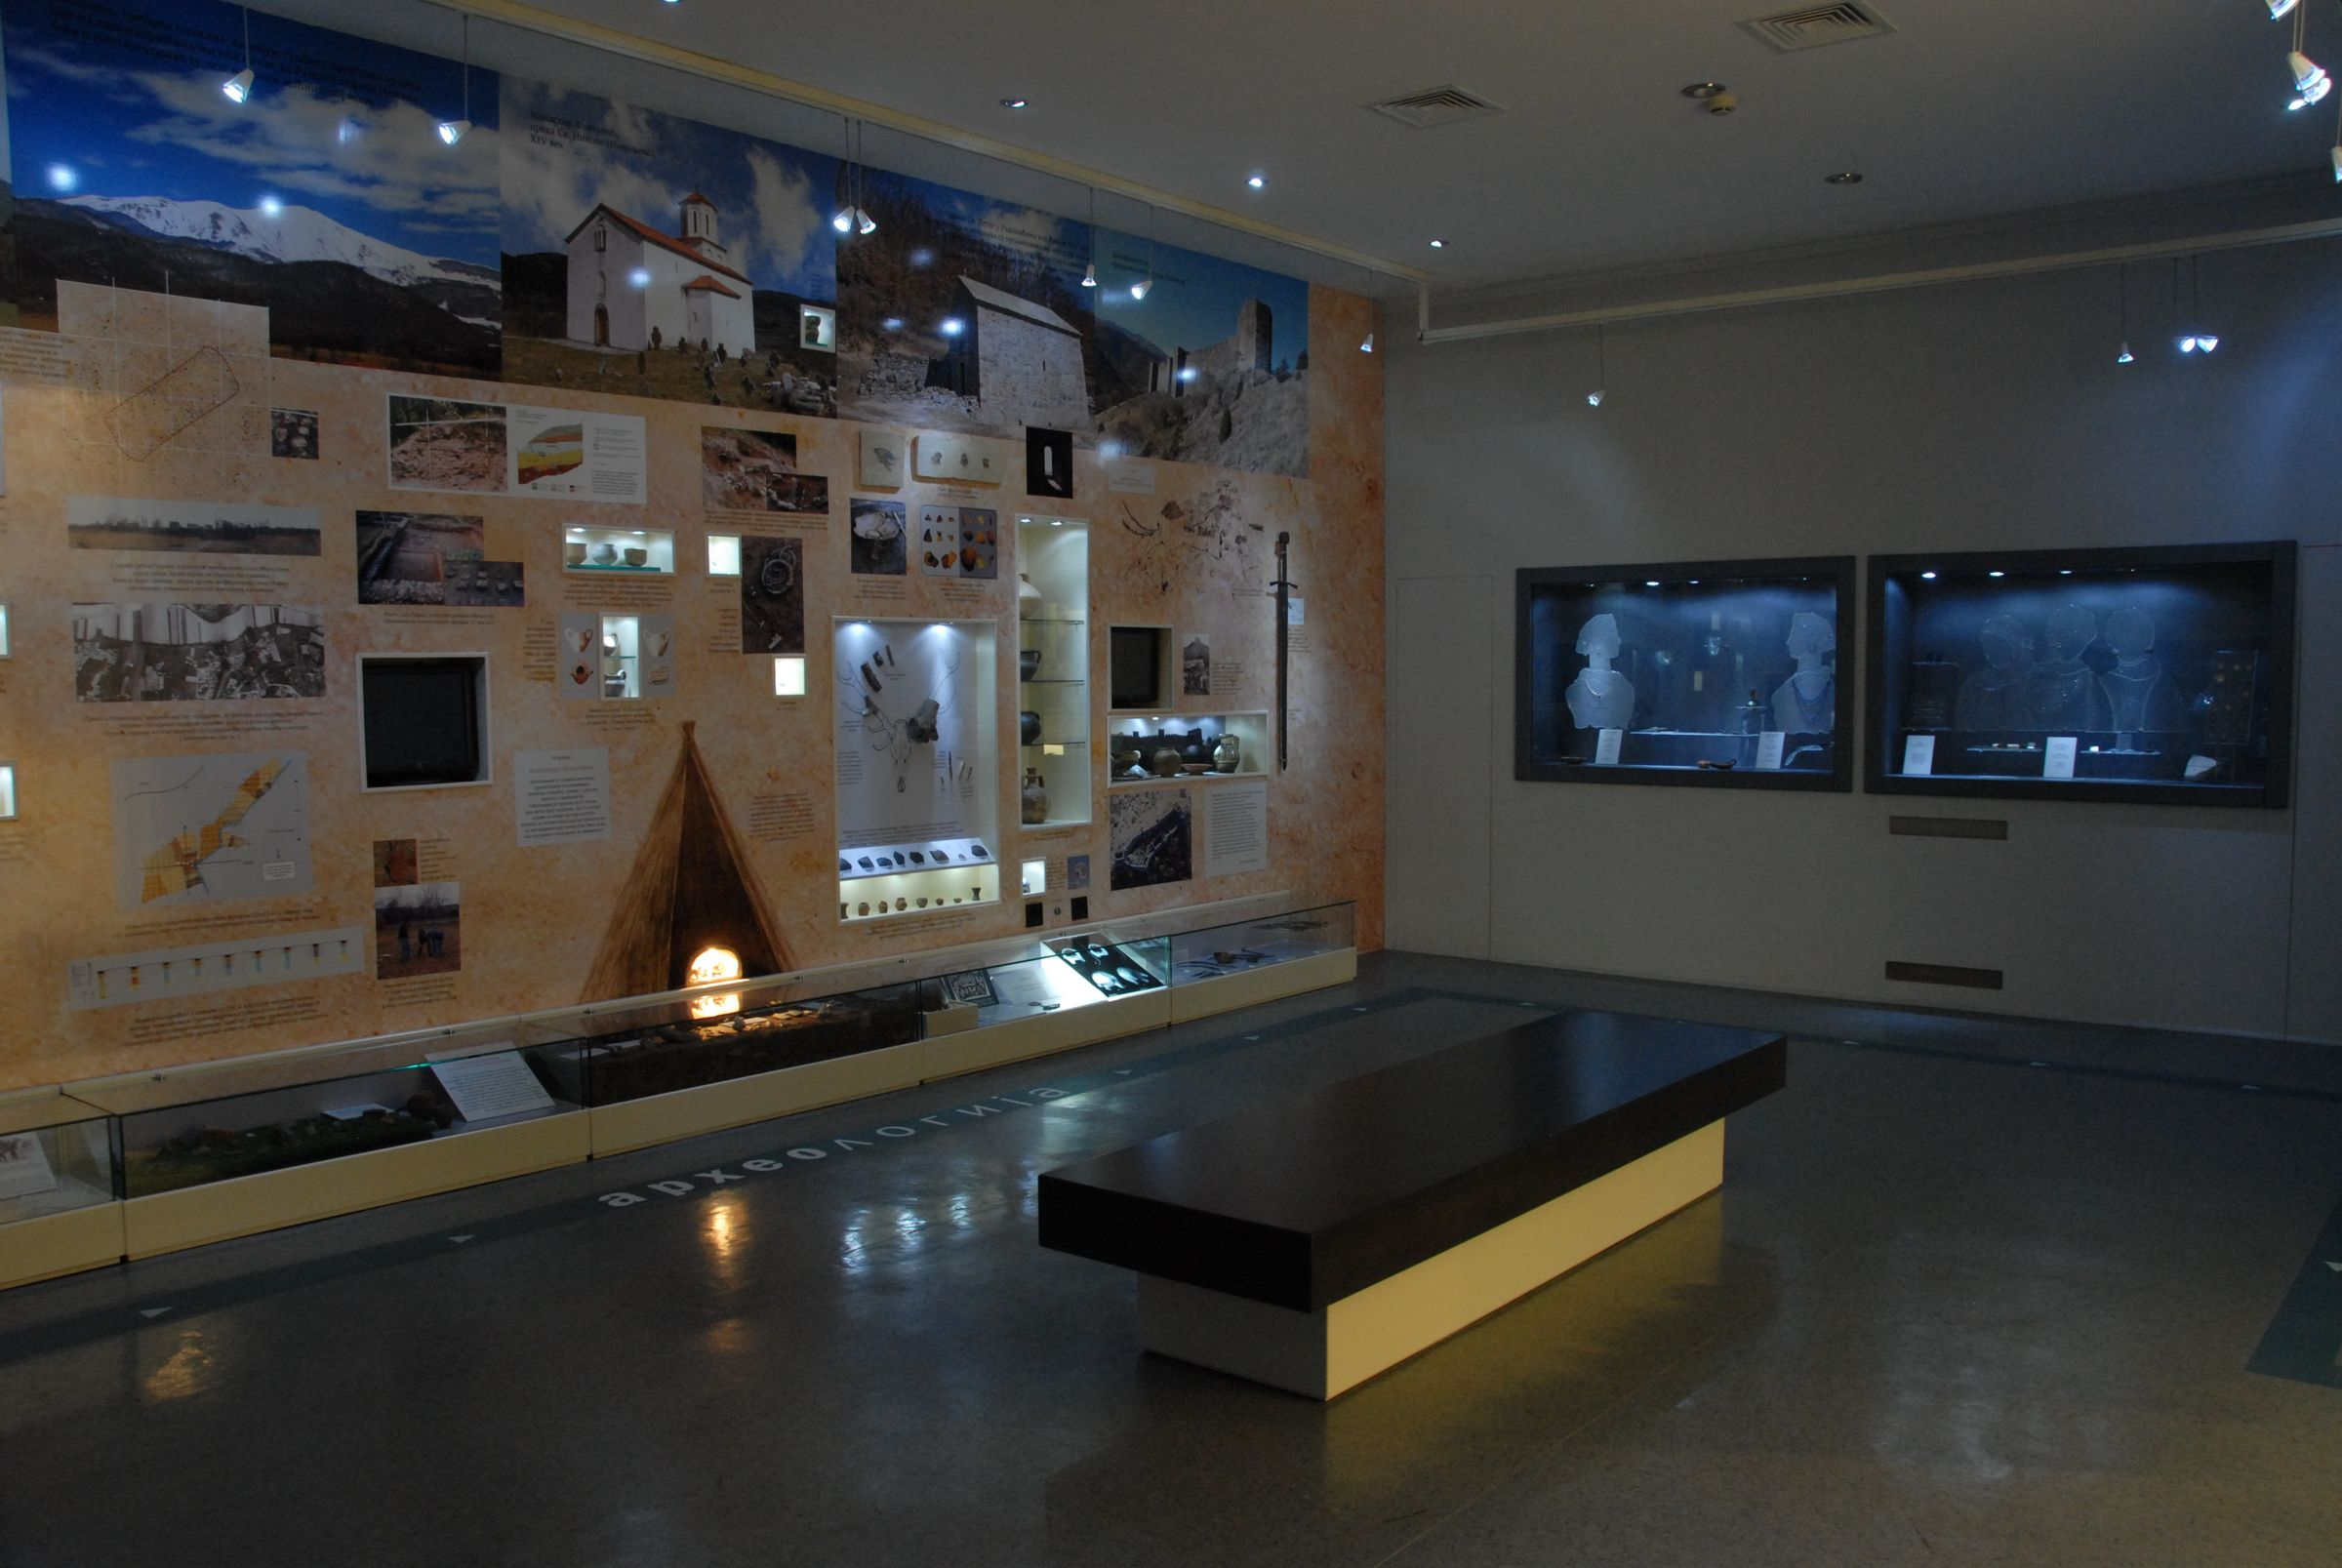 View of the display cases from Antiquity and the Middle Ages on the right wall of the Archaeology Hall